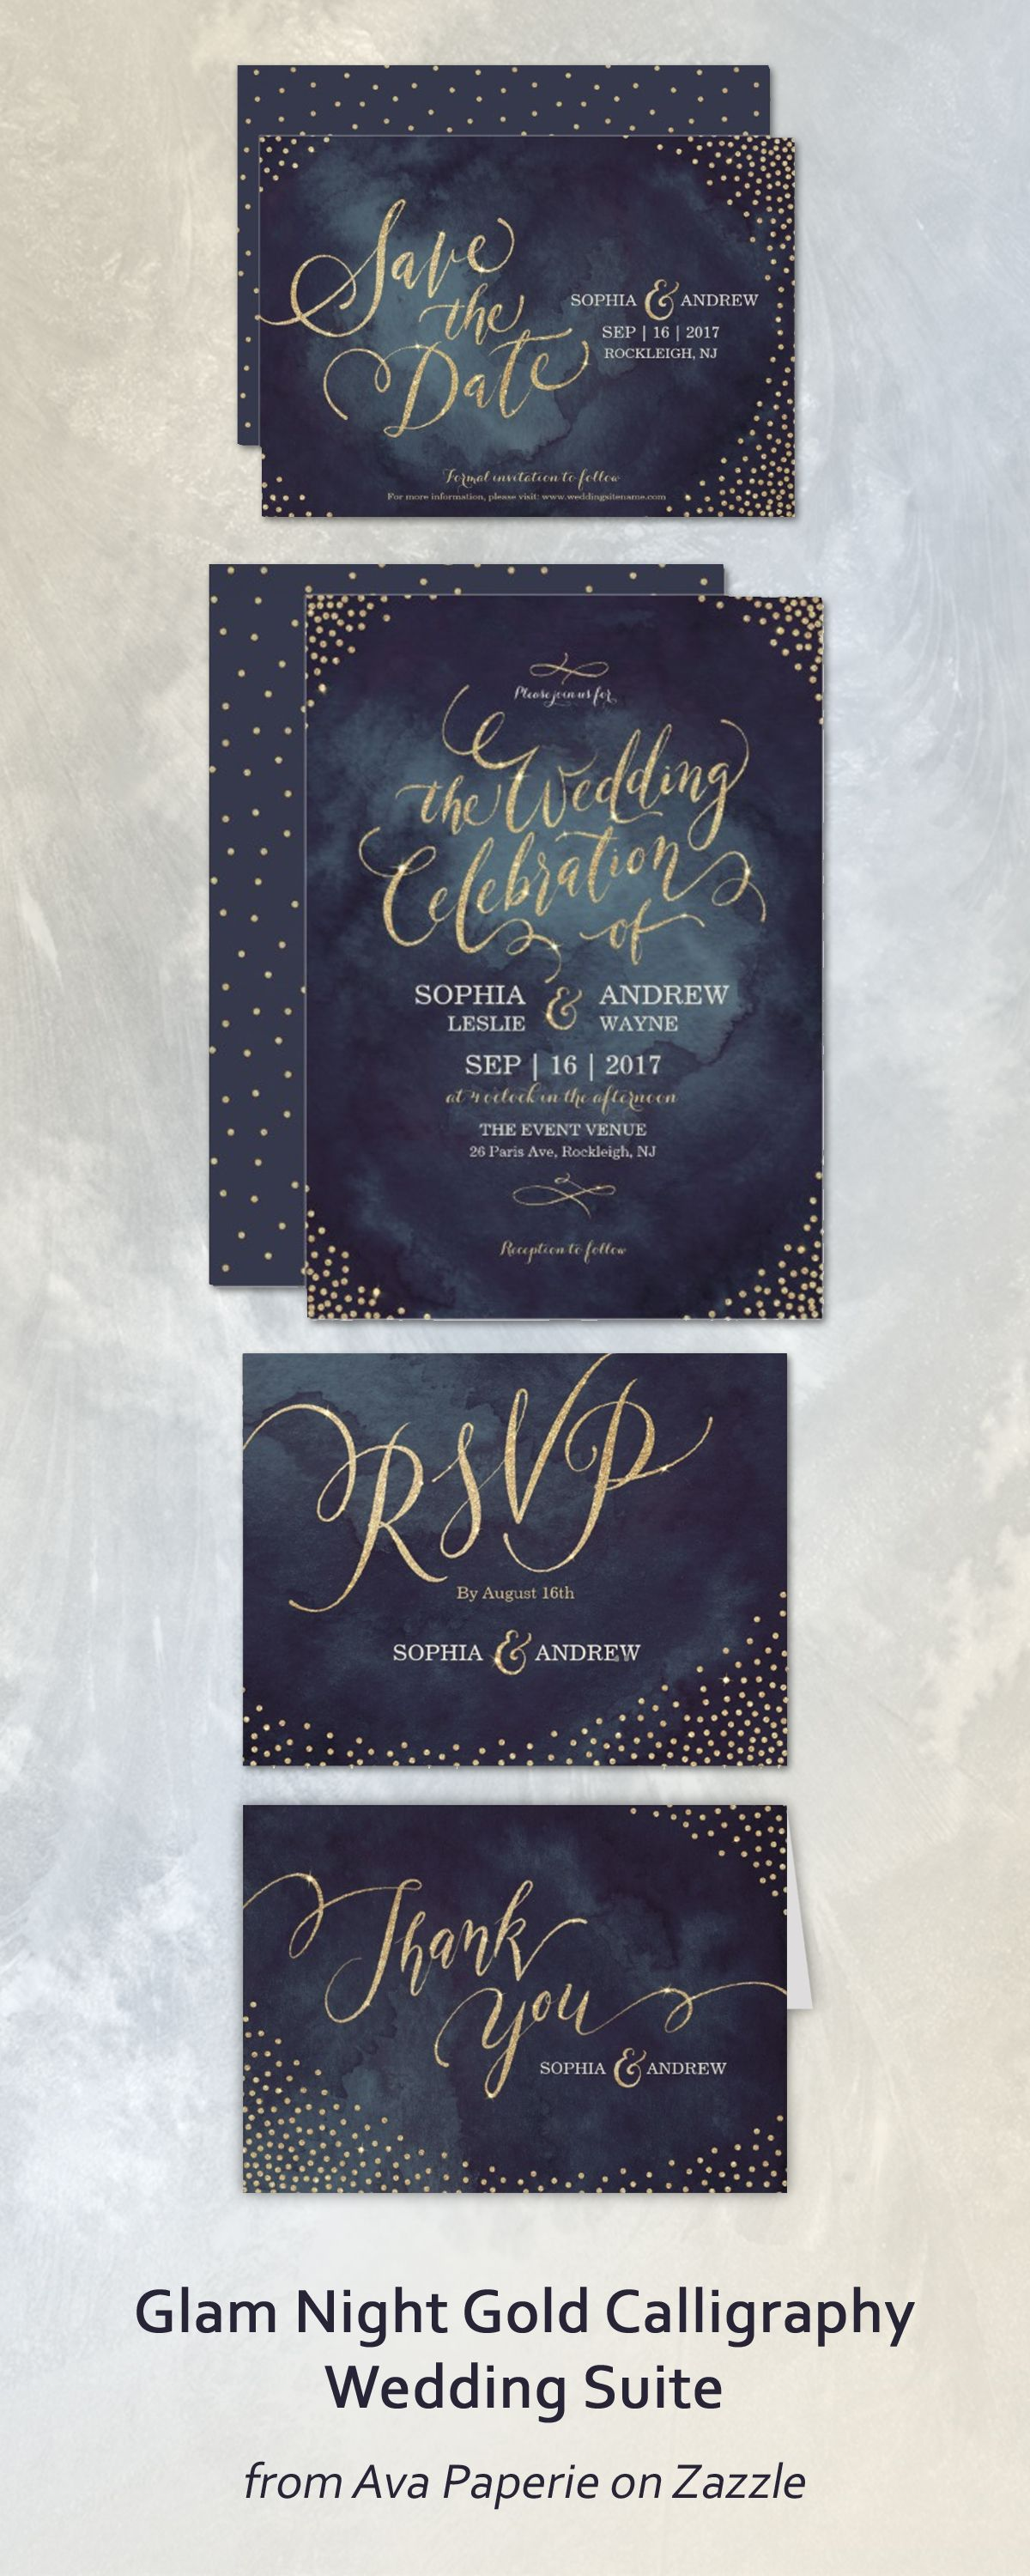 zazzle wedding invitations promo code%0A Chic navy nighttime wedding invitation suite featuring gold hand lettering  calligraphy design and gold confetti dots